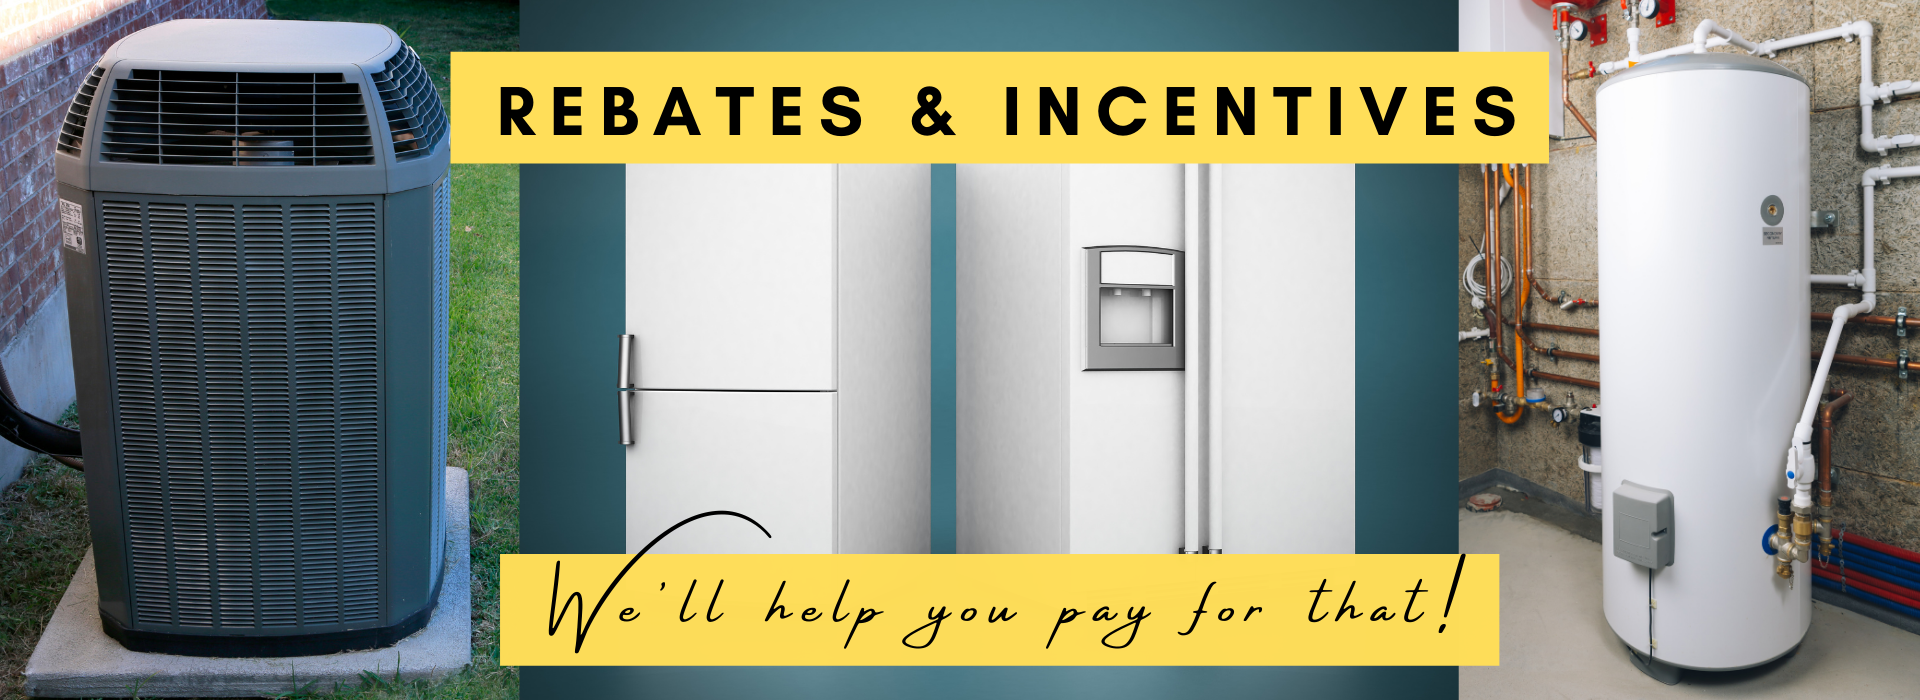 Water heater, refrigerator, and air conditioner rebates